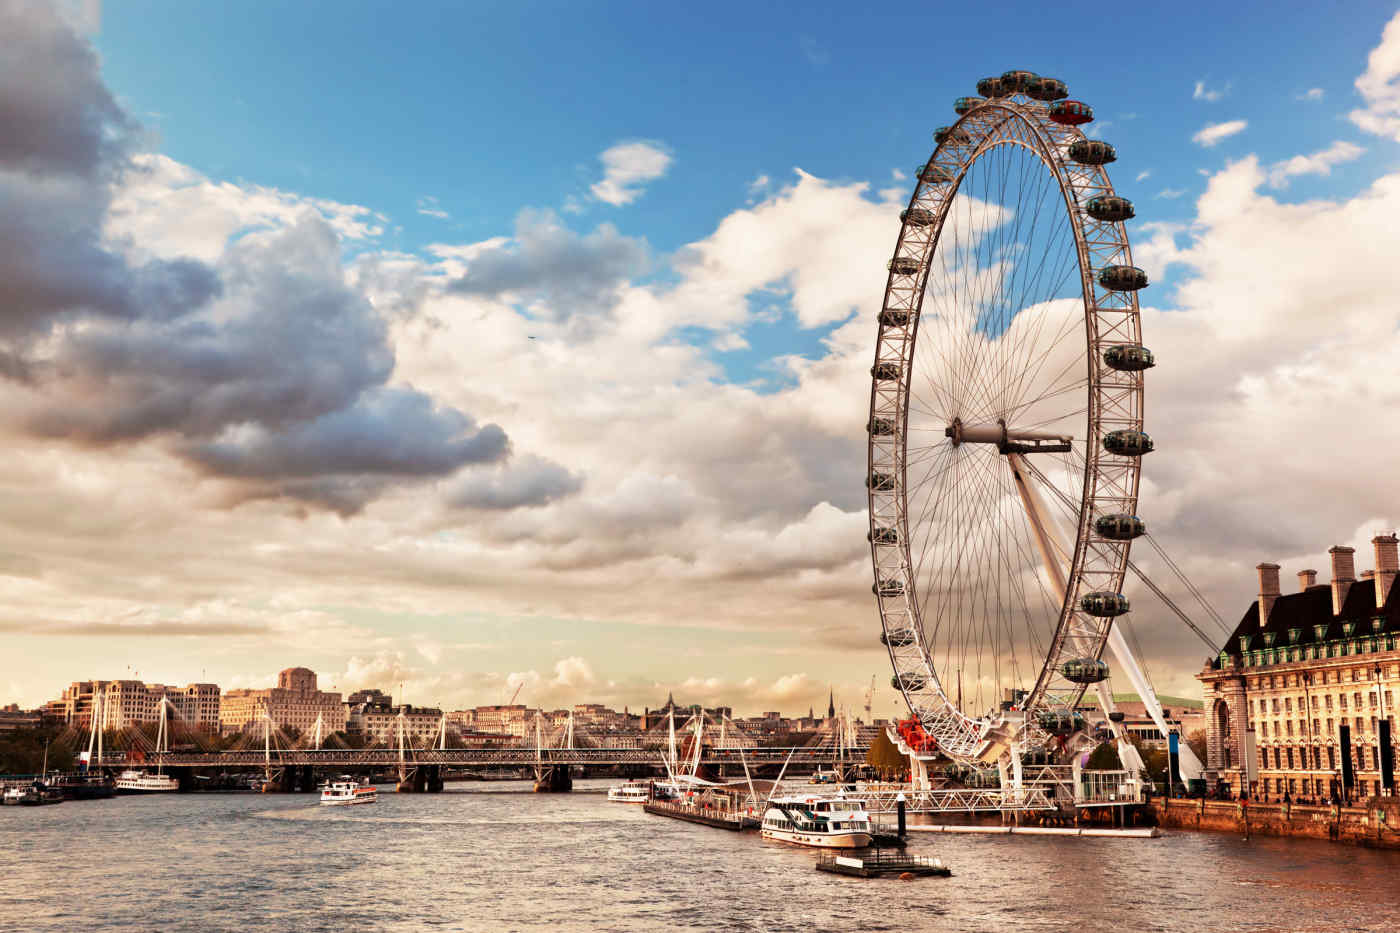 London Eye • London, England